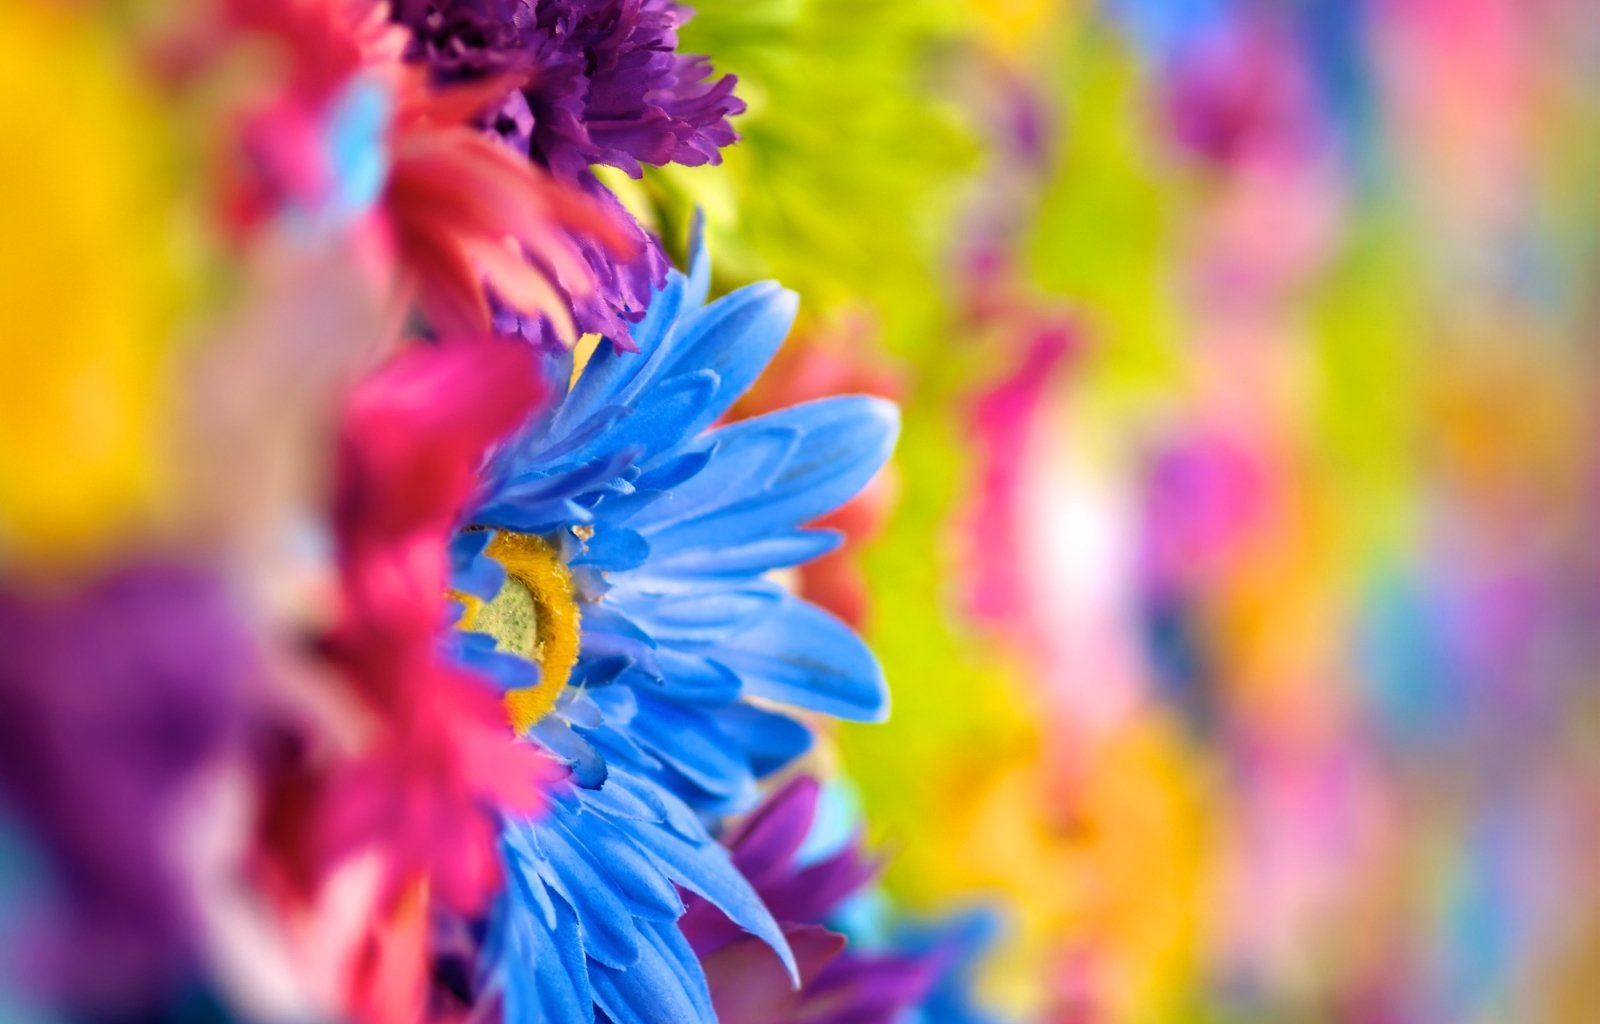 Flower wallpaper and background image 1600x1024 id - Wallpaper 1600x1024 ...